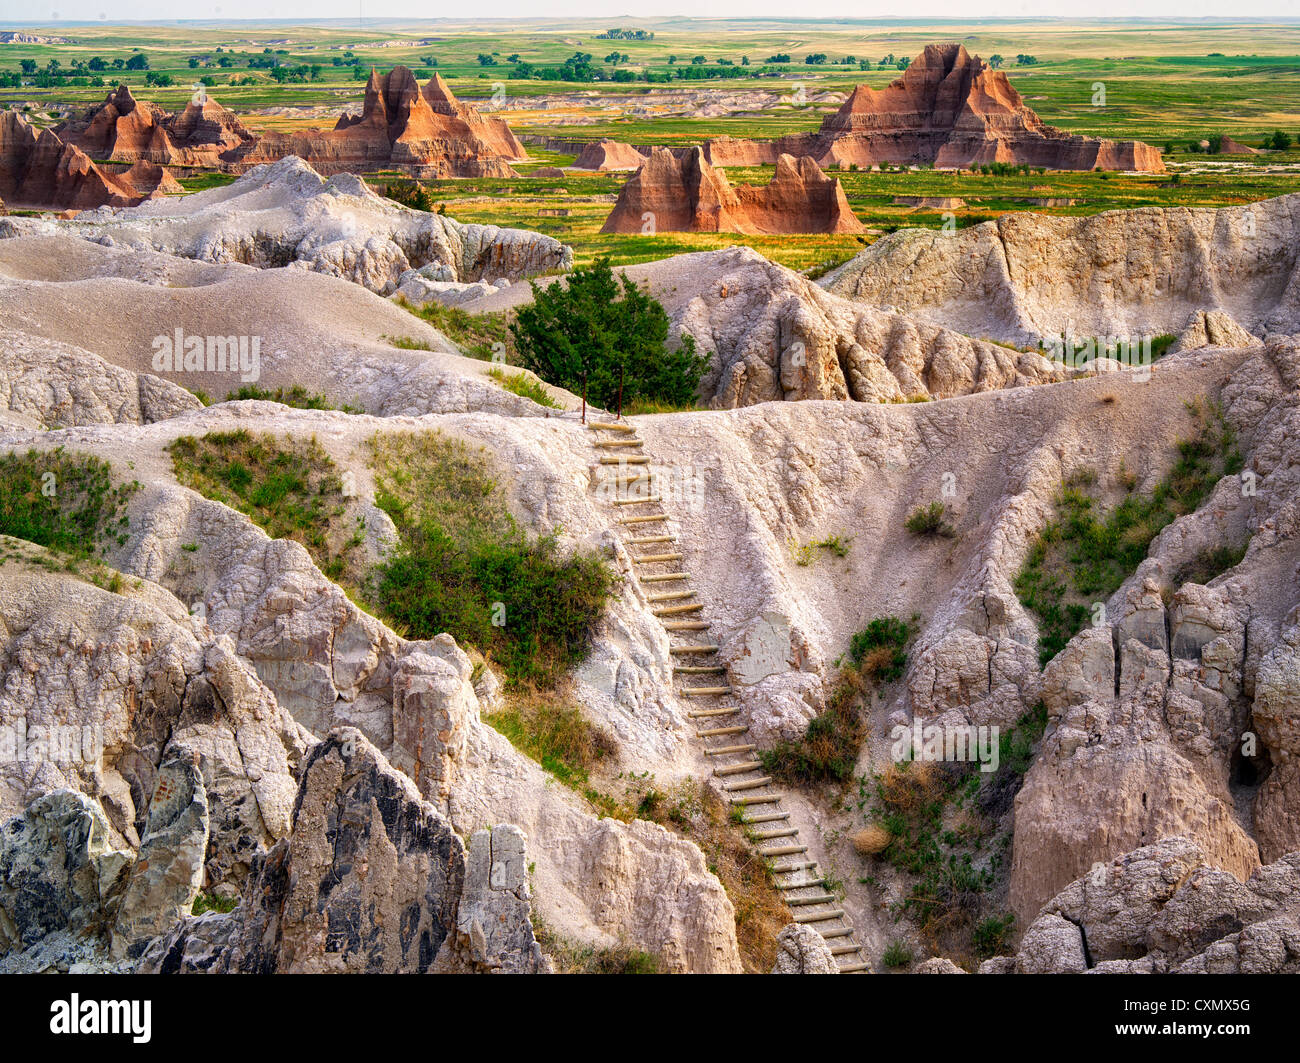 Échelle d'encoche Sentier. Badlands National Park (Dakota du Sud). Photo Stock